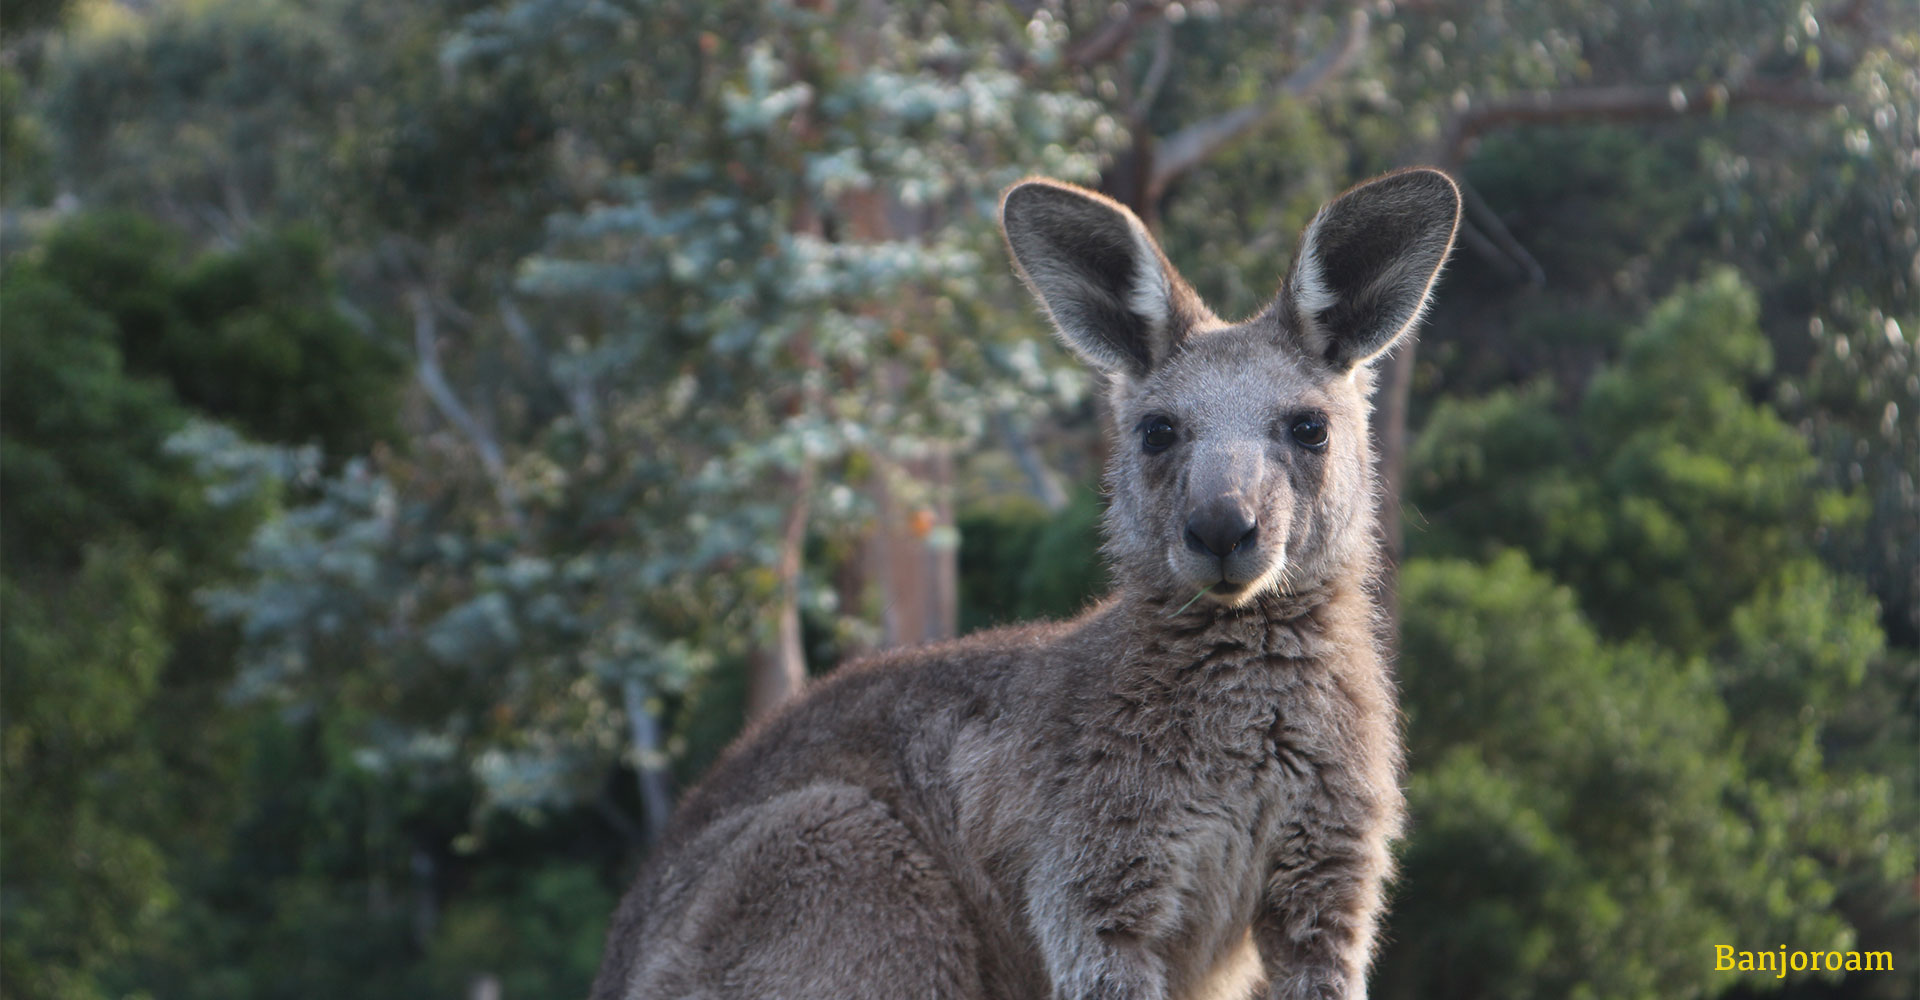 How To Actually Fix Australias Conservation Crisis - Australia - Kangaroo - Conjour Editorial - Banjoroam Photography - Feature